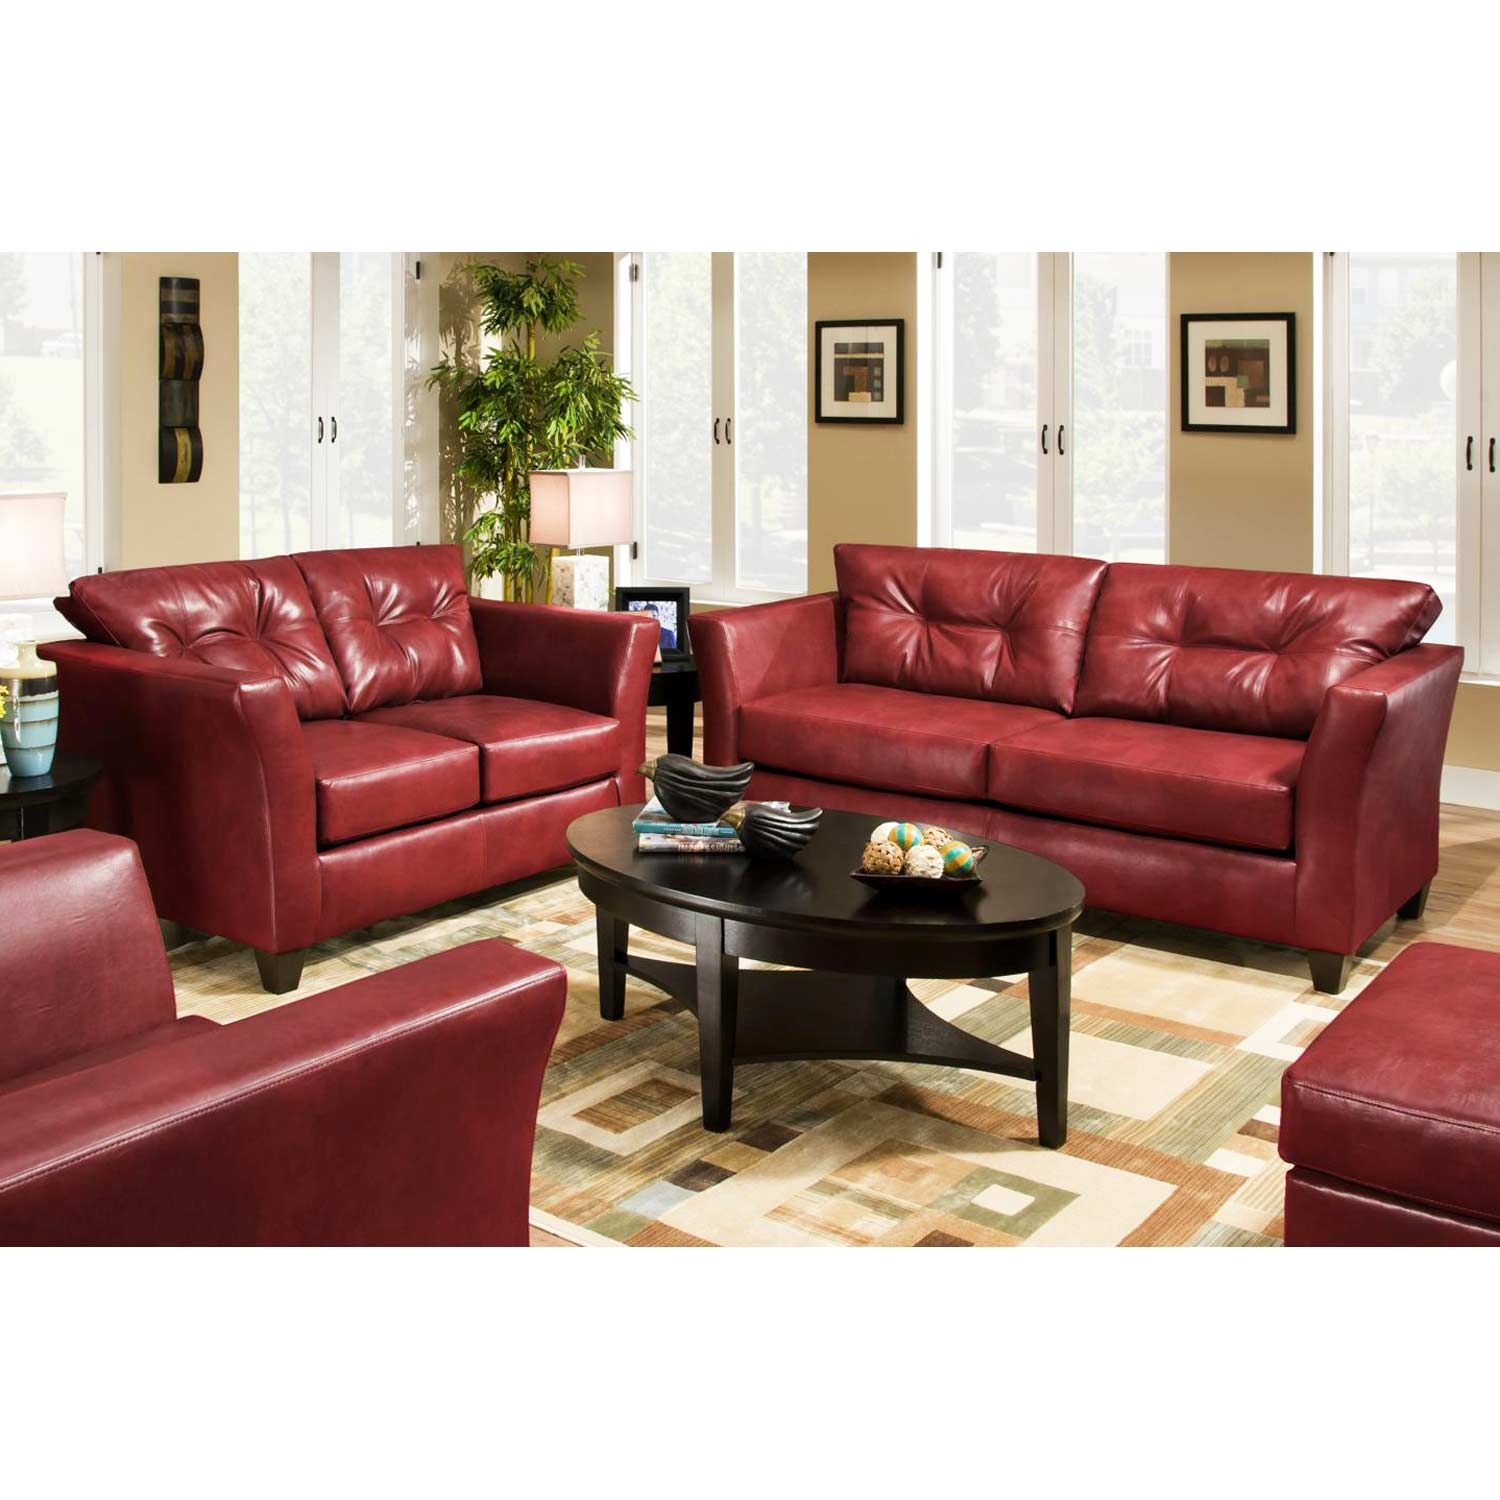 Del Mar Tufted Leather Sofa Tonto Strawberry Dcg Stores